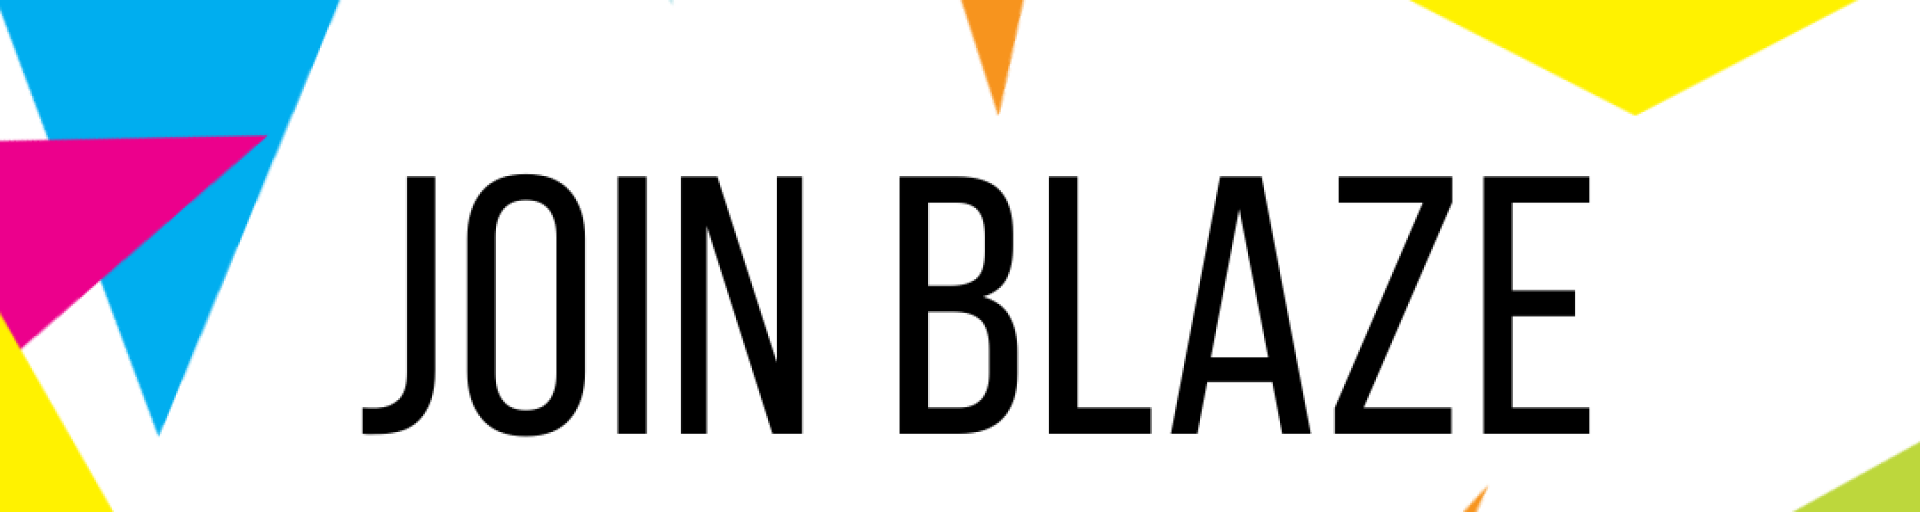 A white background with different coloured triangles around the edge. In the centre are the words Join Blaze in black text.